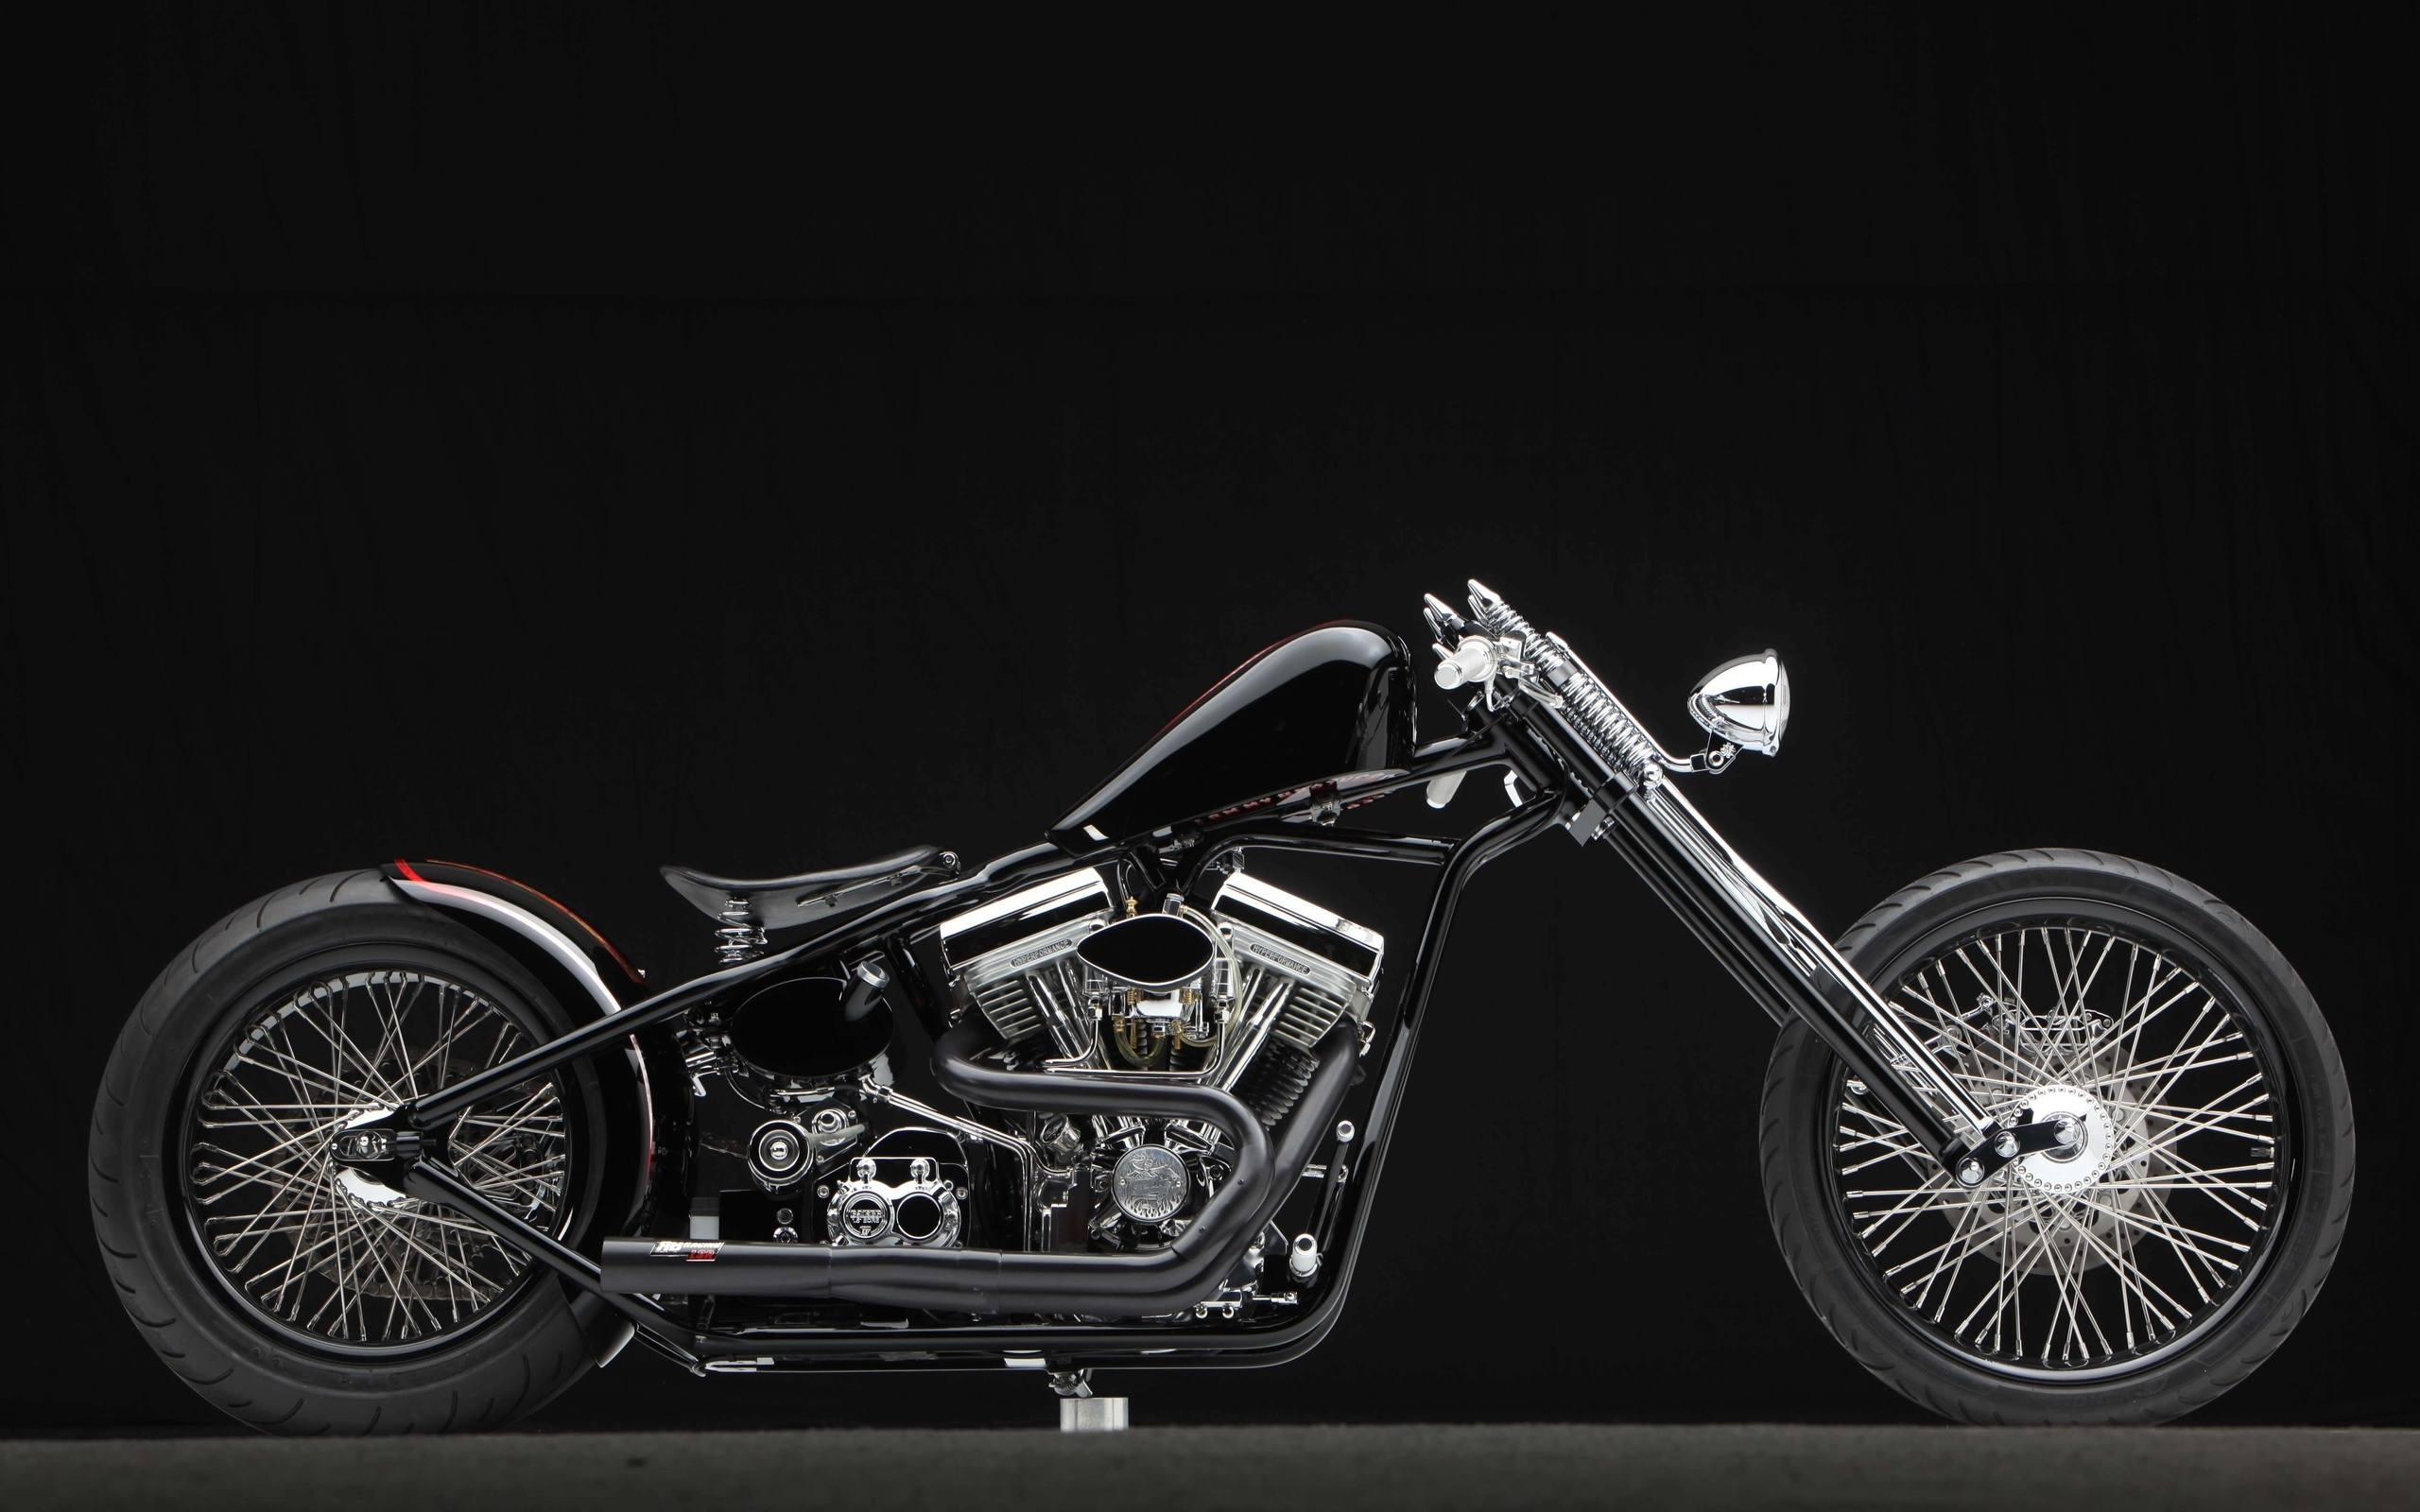 2560x1600 Chopper Motorcycle Wallpaper 1 | HD Wallpapers (High Definition ...